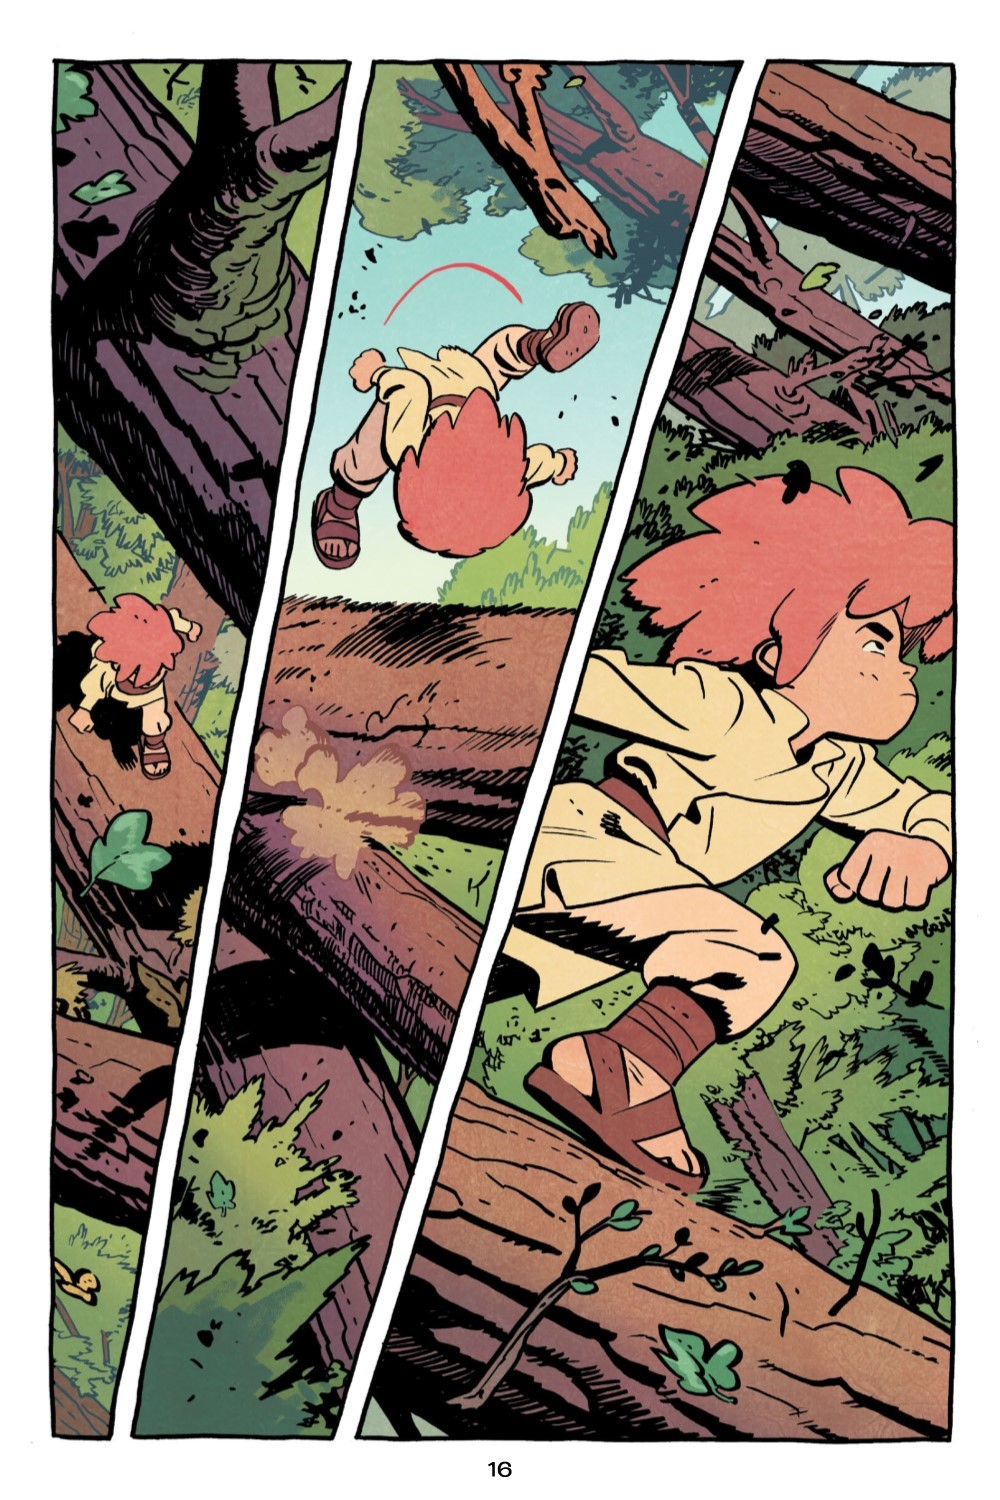 JONNA-V1-REFERENCE-017 ComicList Previews: JONNA AND THE UNPOSSIBLE MONSTER VOLUME 1 TP